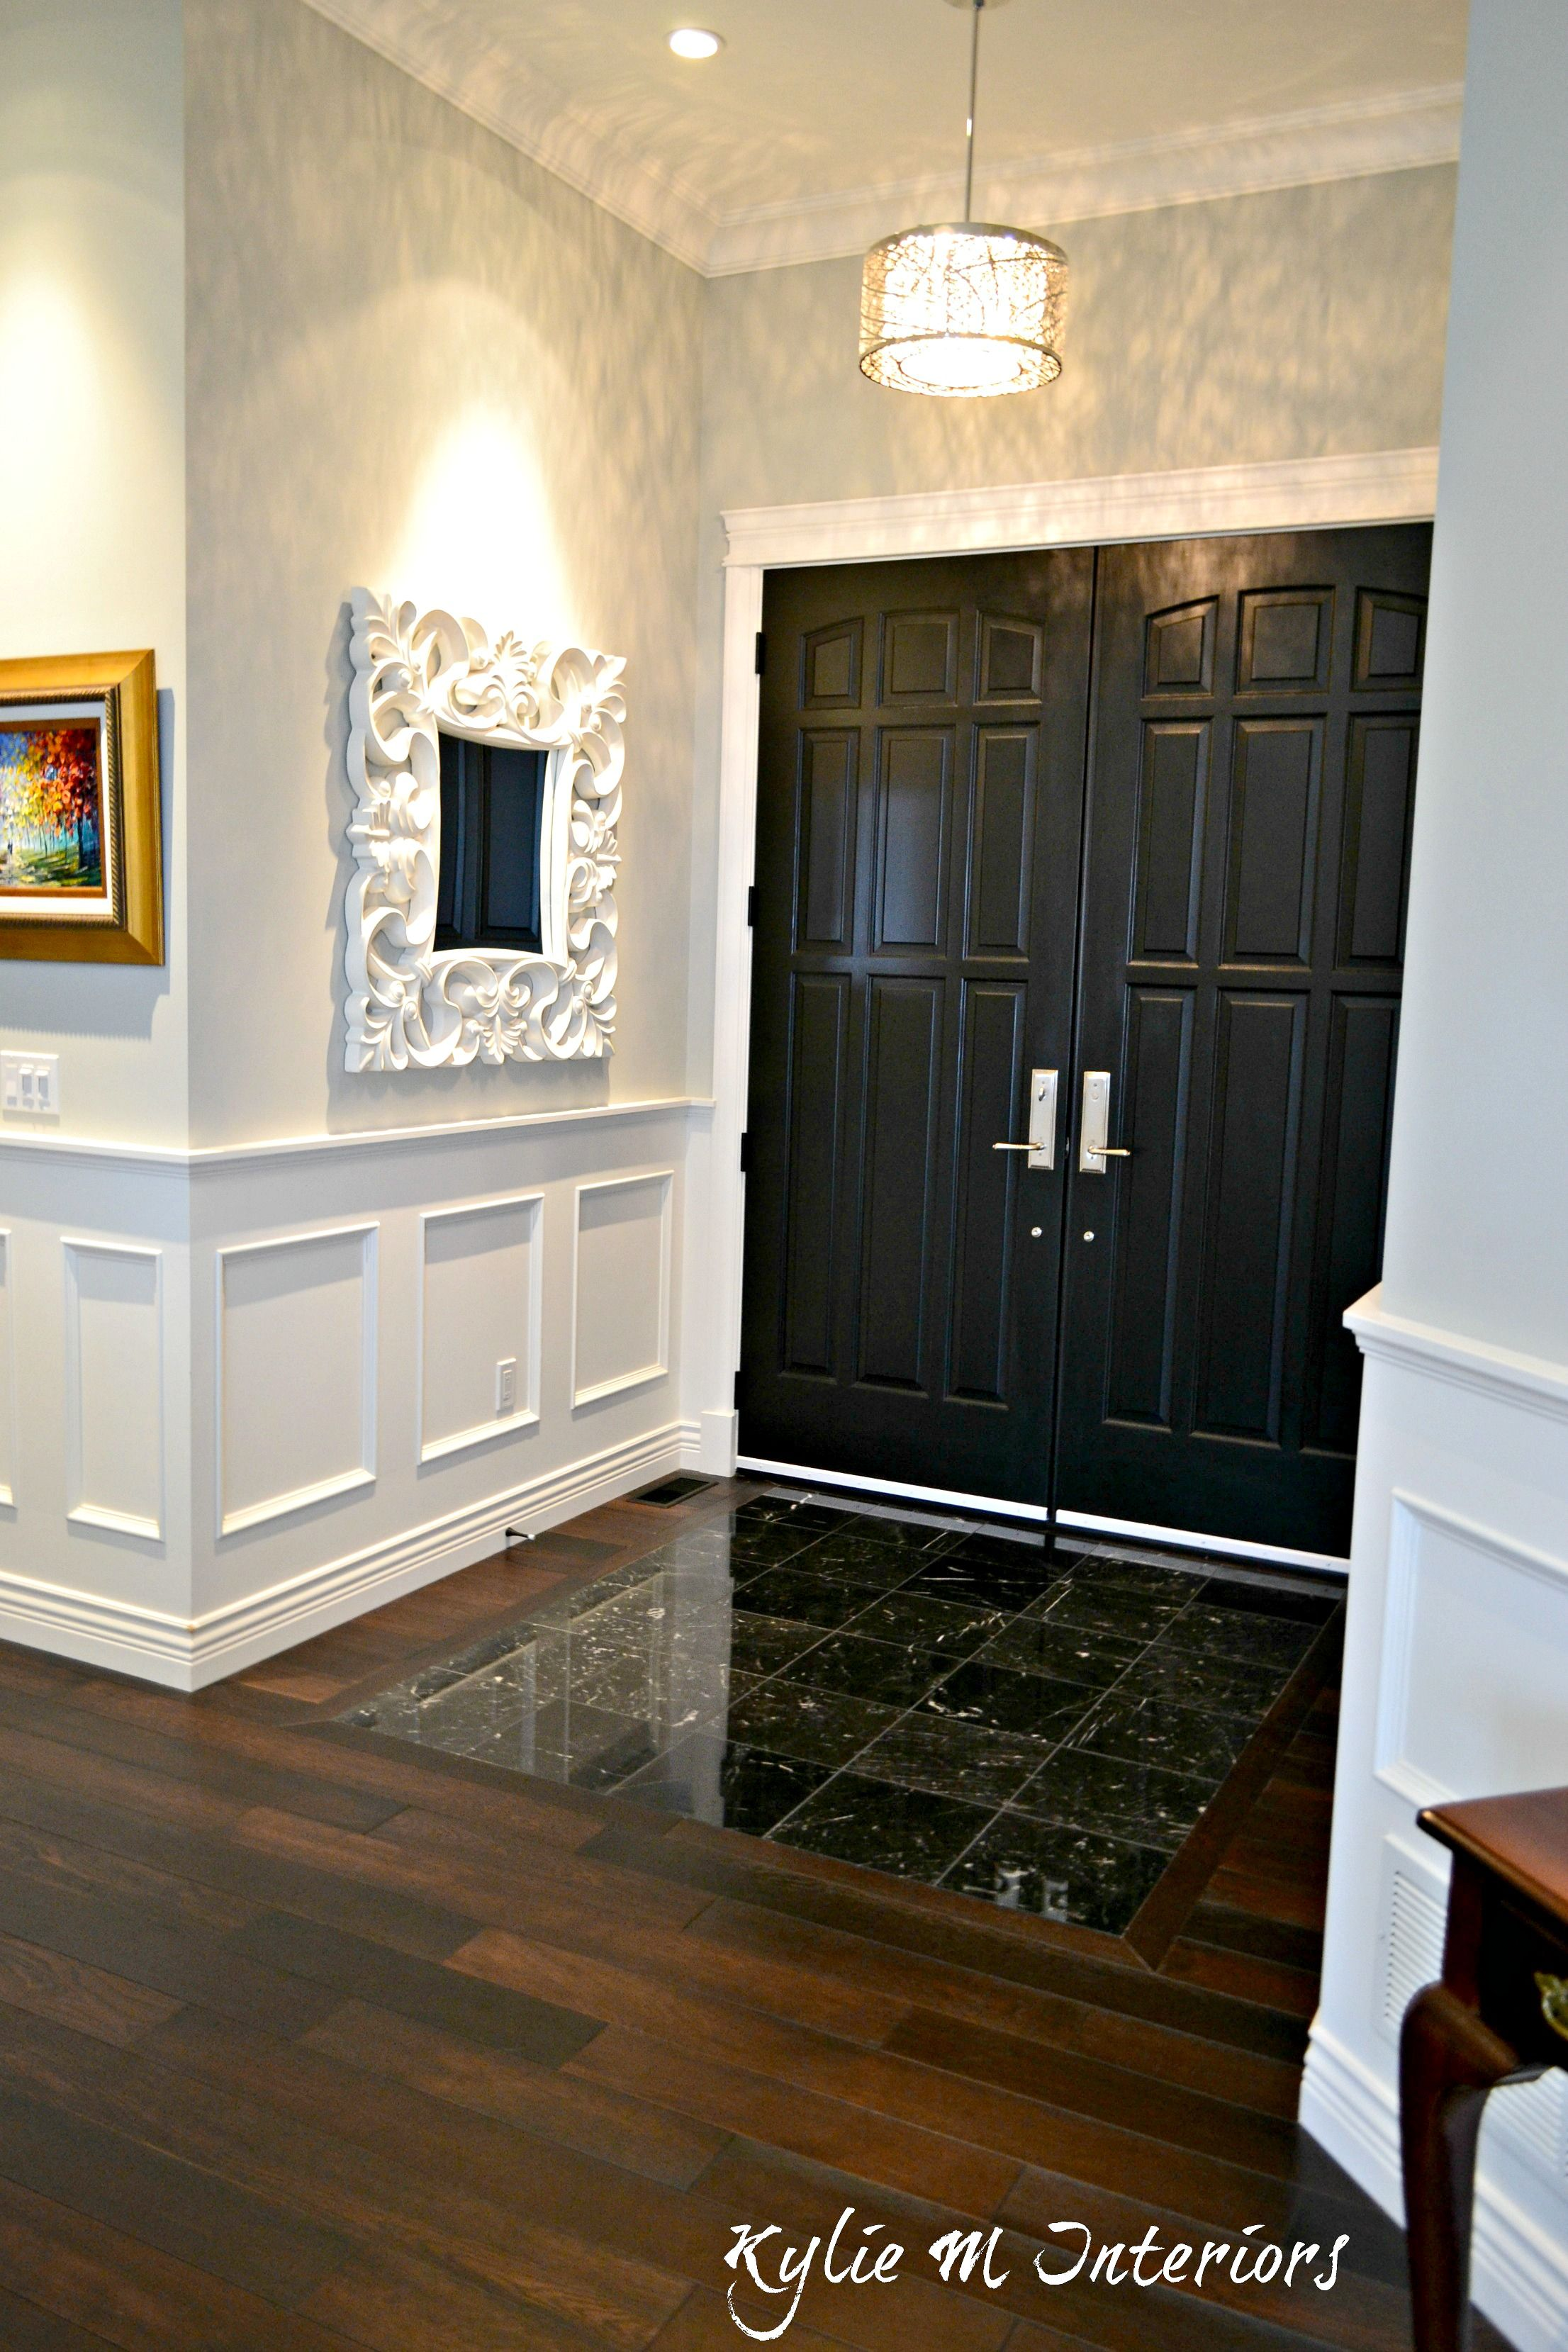 Gray And White Home Marble Dark Wood And More White Wainscoting Front Doors Painted Black Black Marble Tile